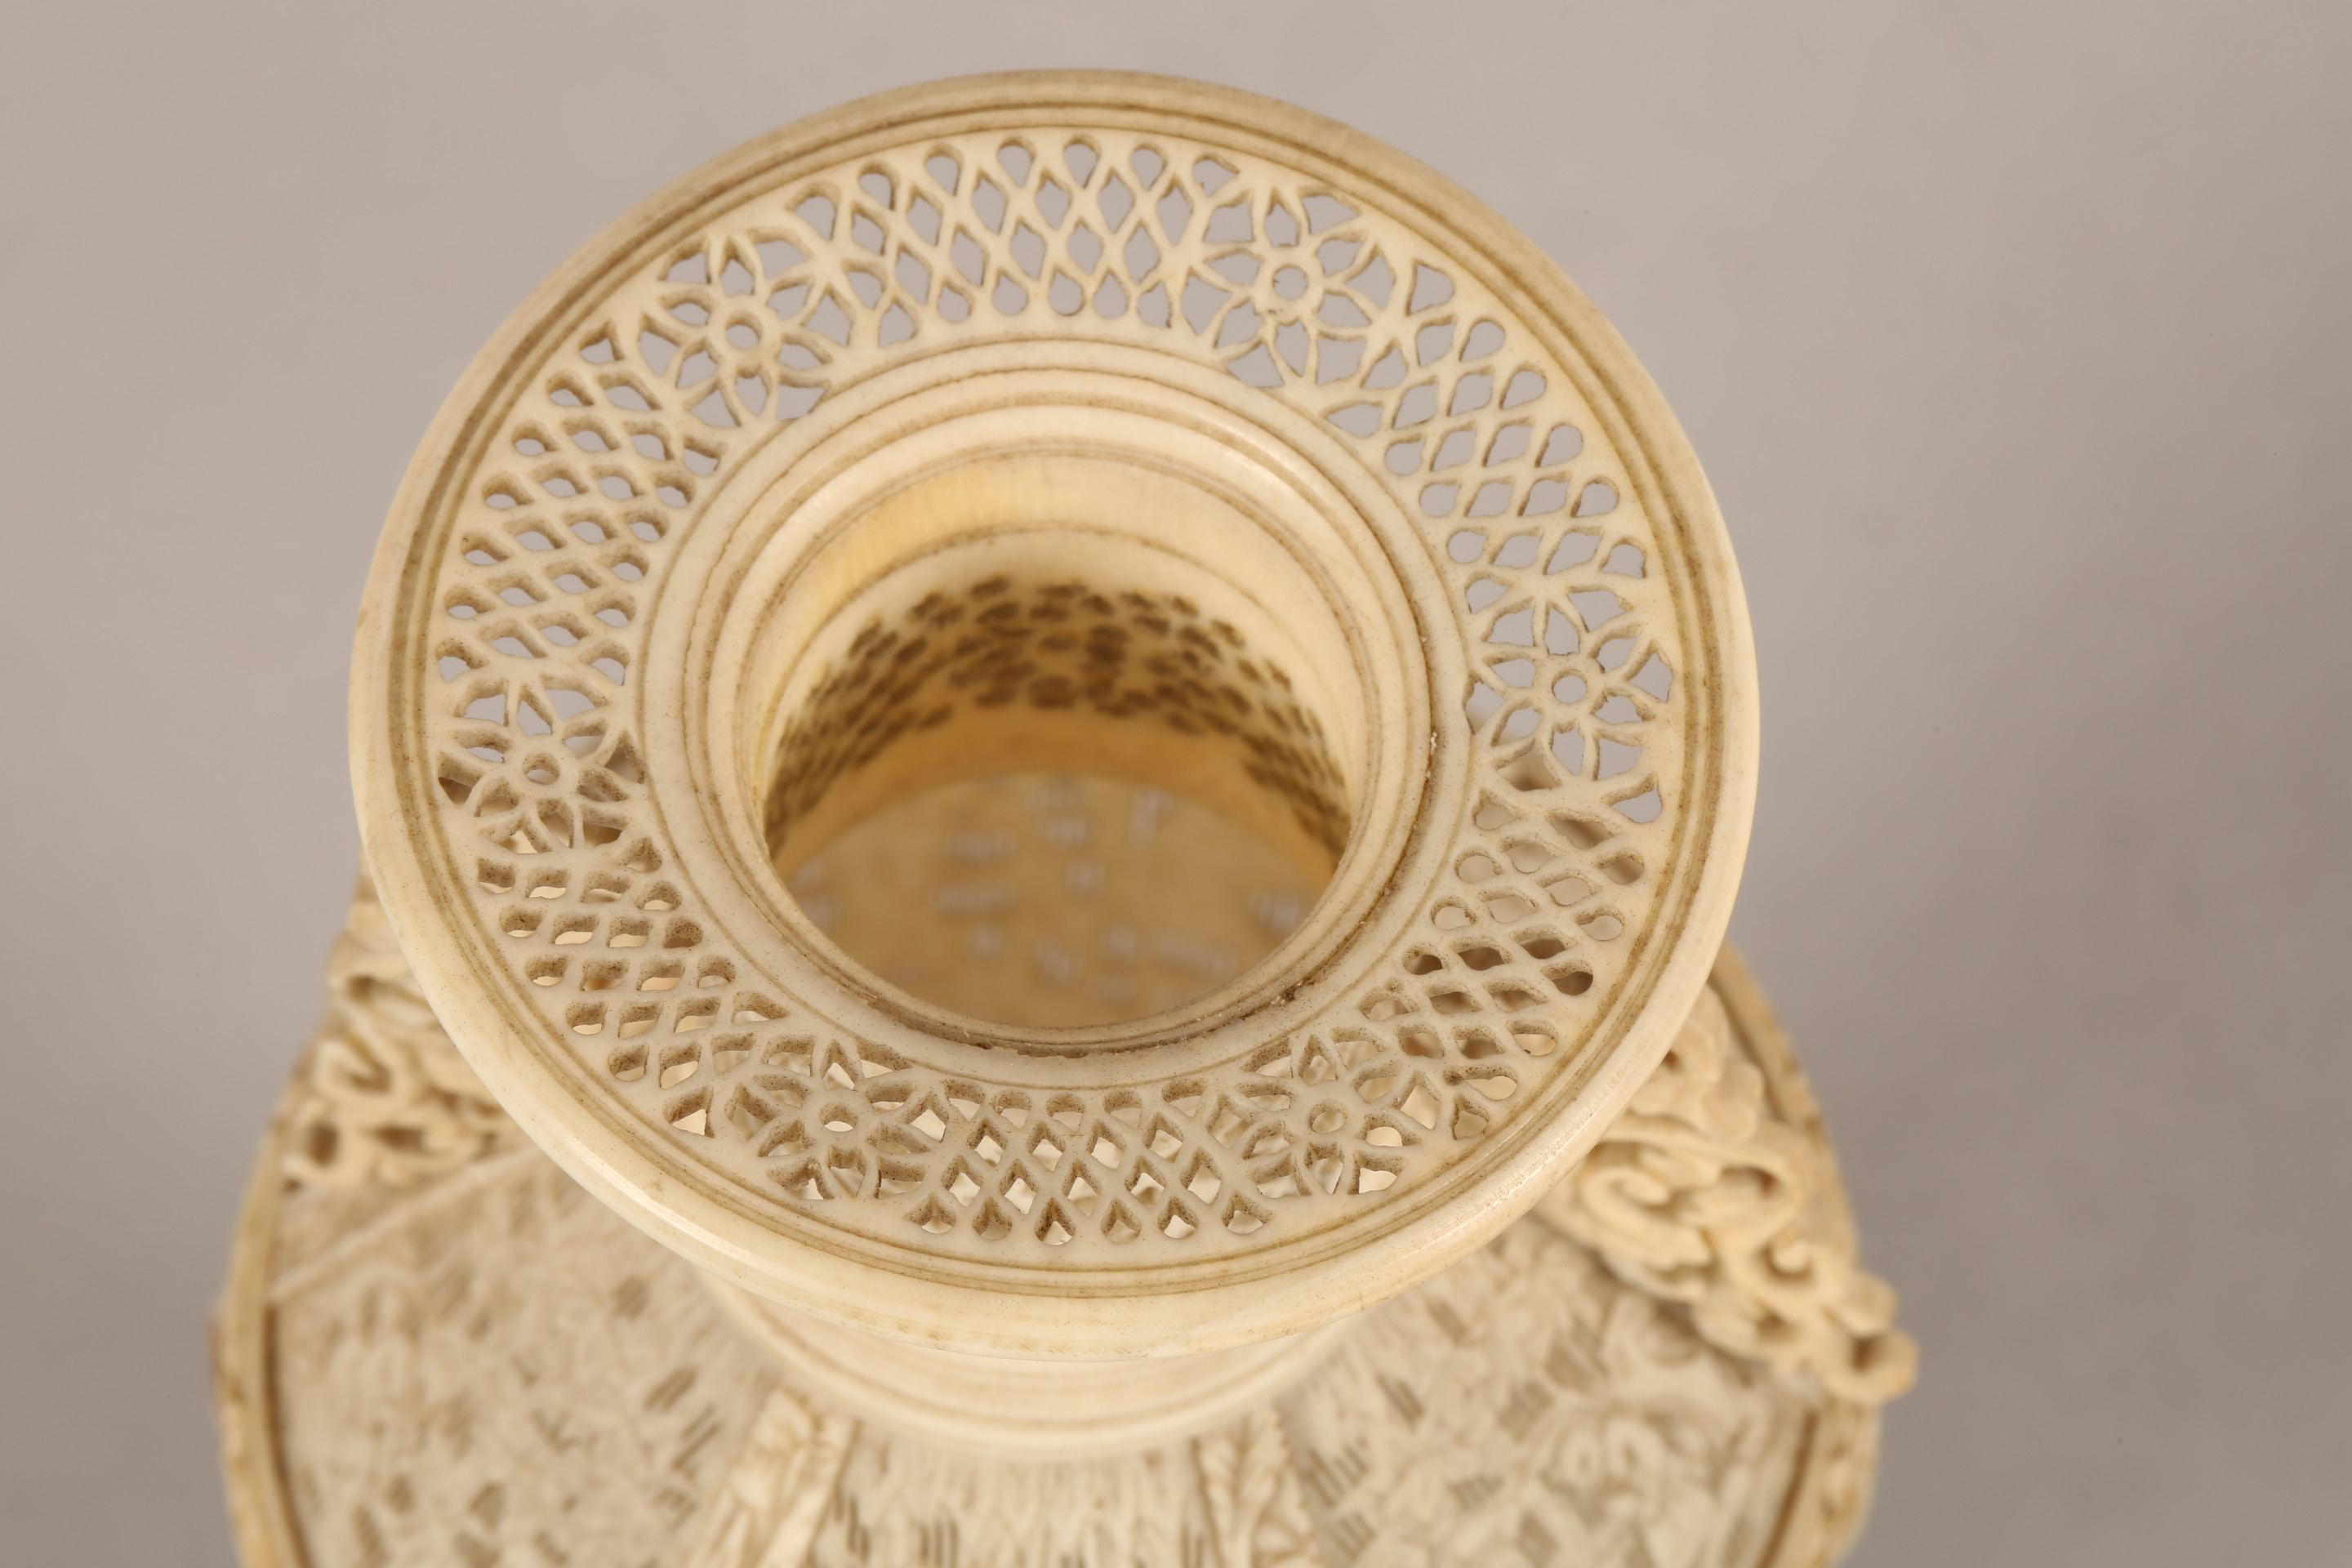 19th century Chinese Canton reticulated ivory twin handled vase (minor damages) 17.5cm high. - Image 2 of 7